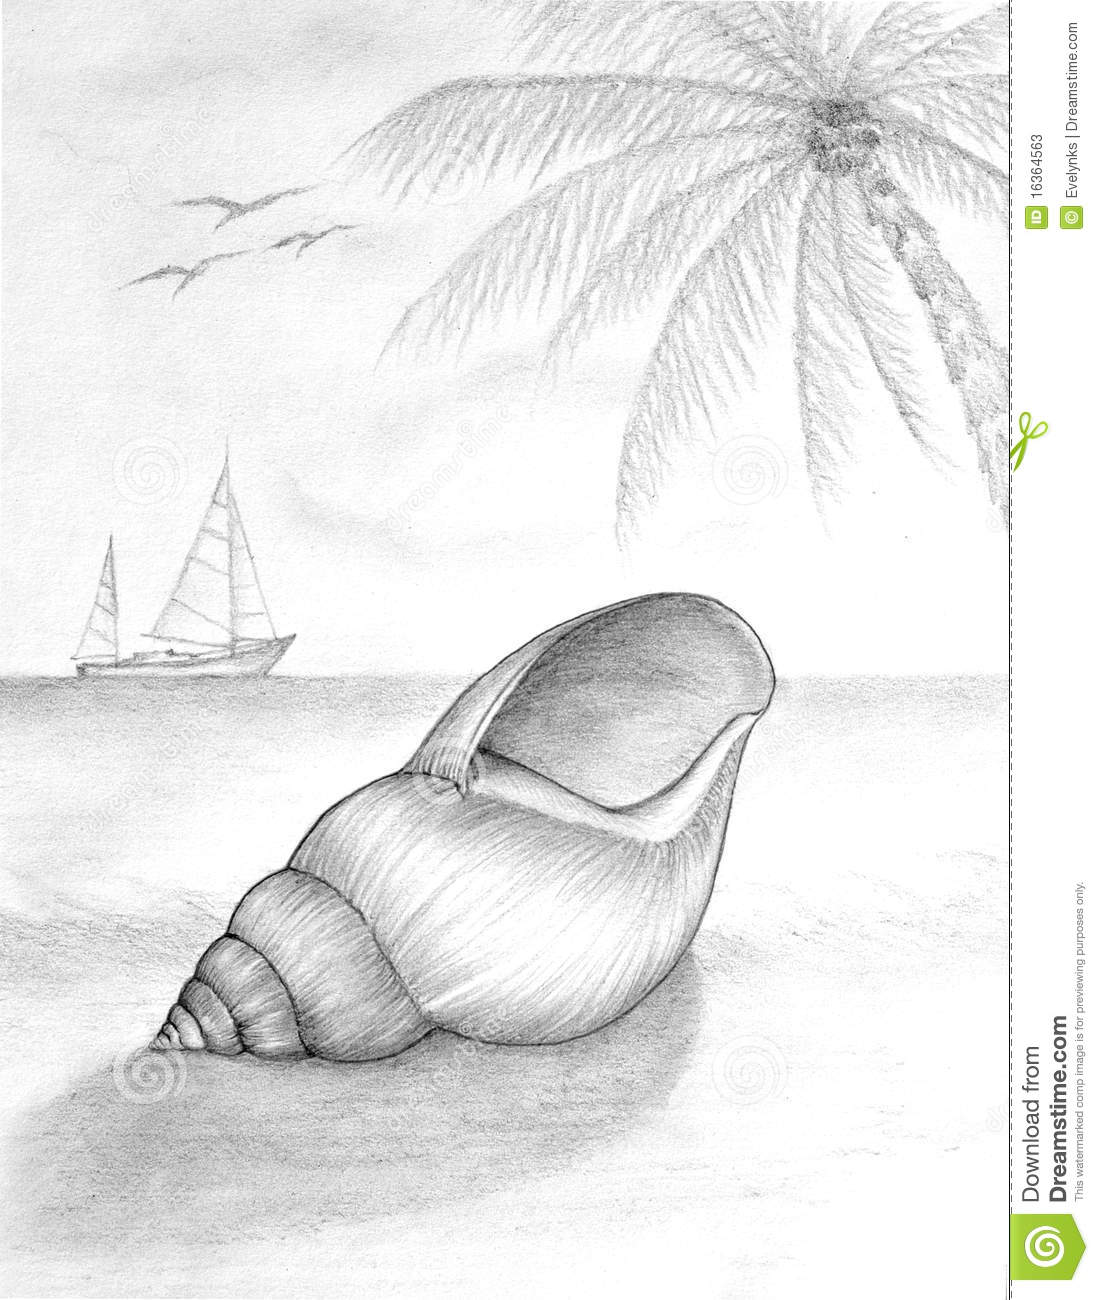 Pencil Drawing Of Beach Scene Stock Photos - Image 16364563